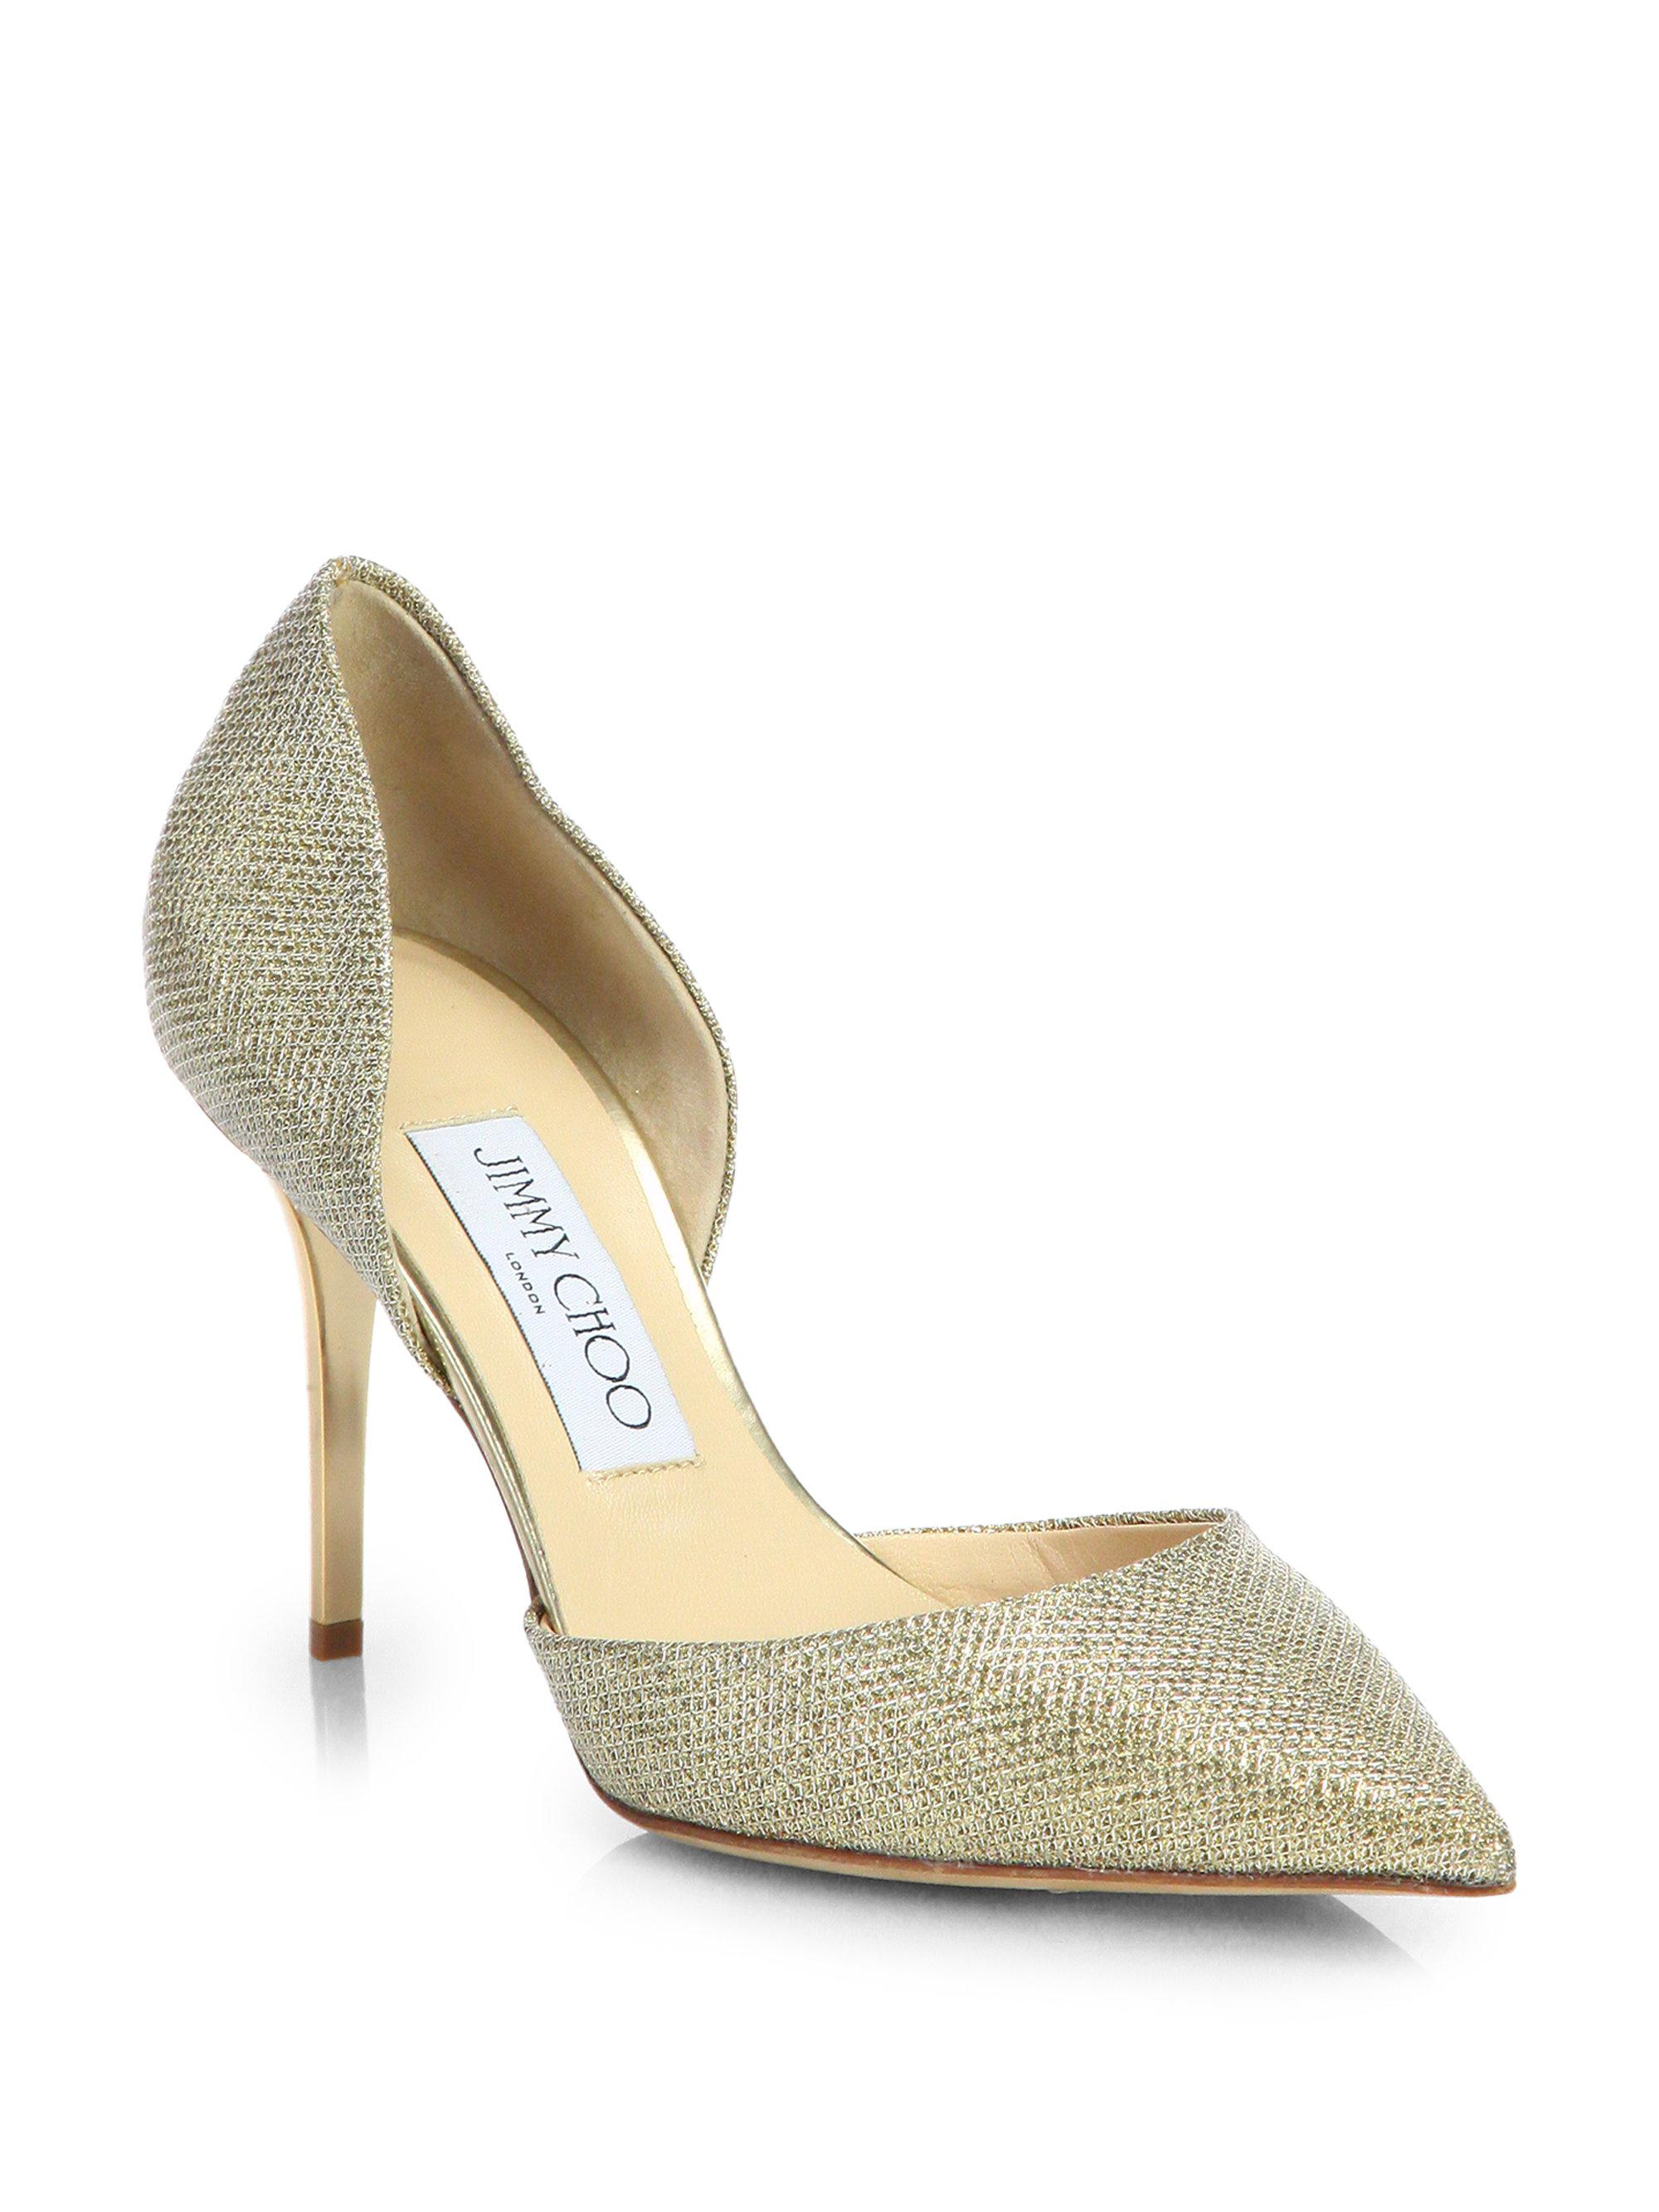 discount shopping online fashion Style sale online Jimmy Choo Glitter D'Orsay Pumps 2015 new for sale ObpDt7SV